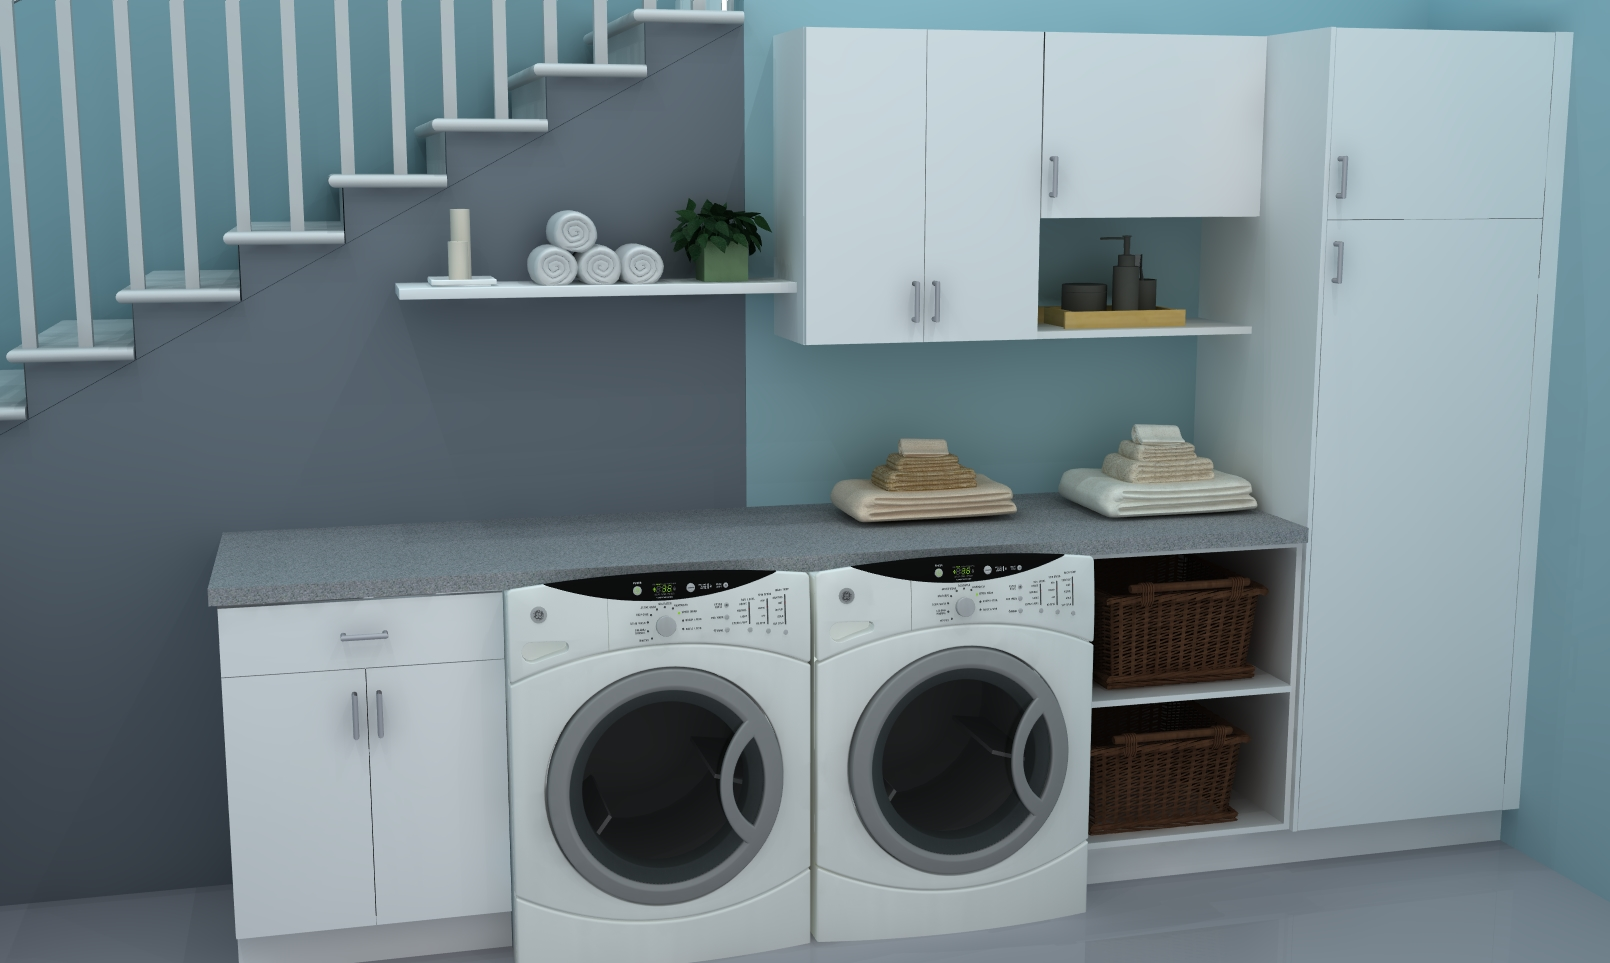 Laundry Room Ideas Ikea Useful Spaces A Practical Ikea Laundry Room